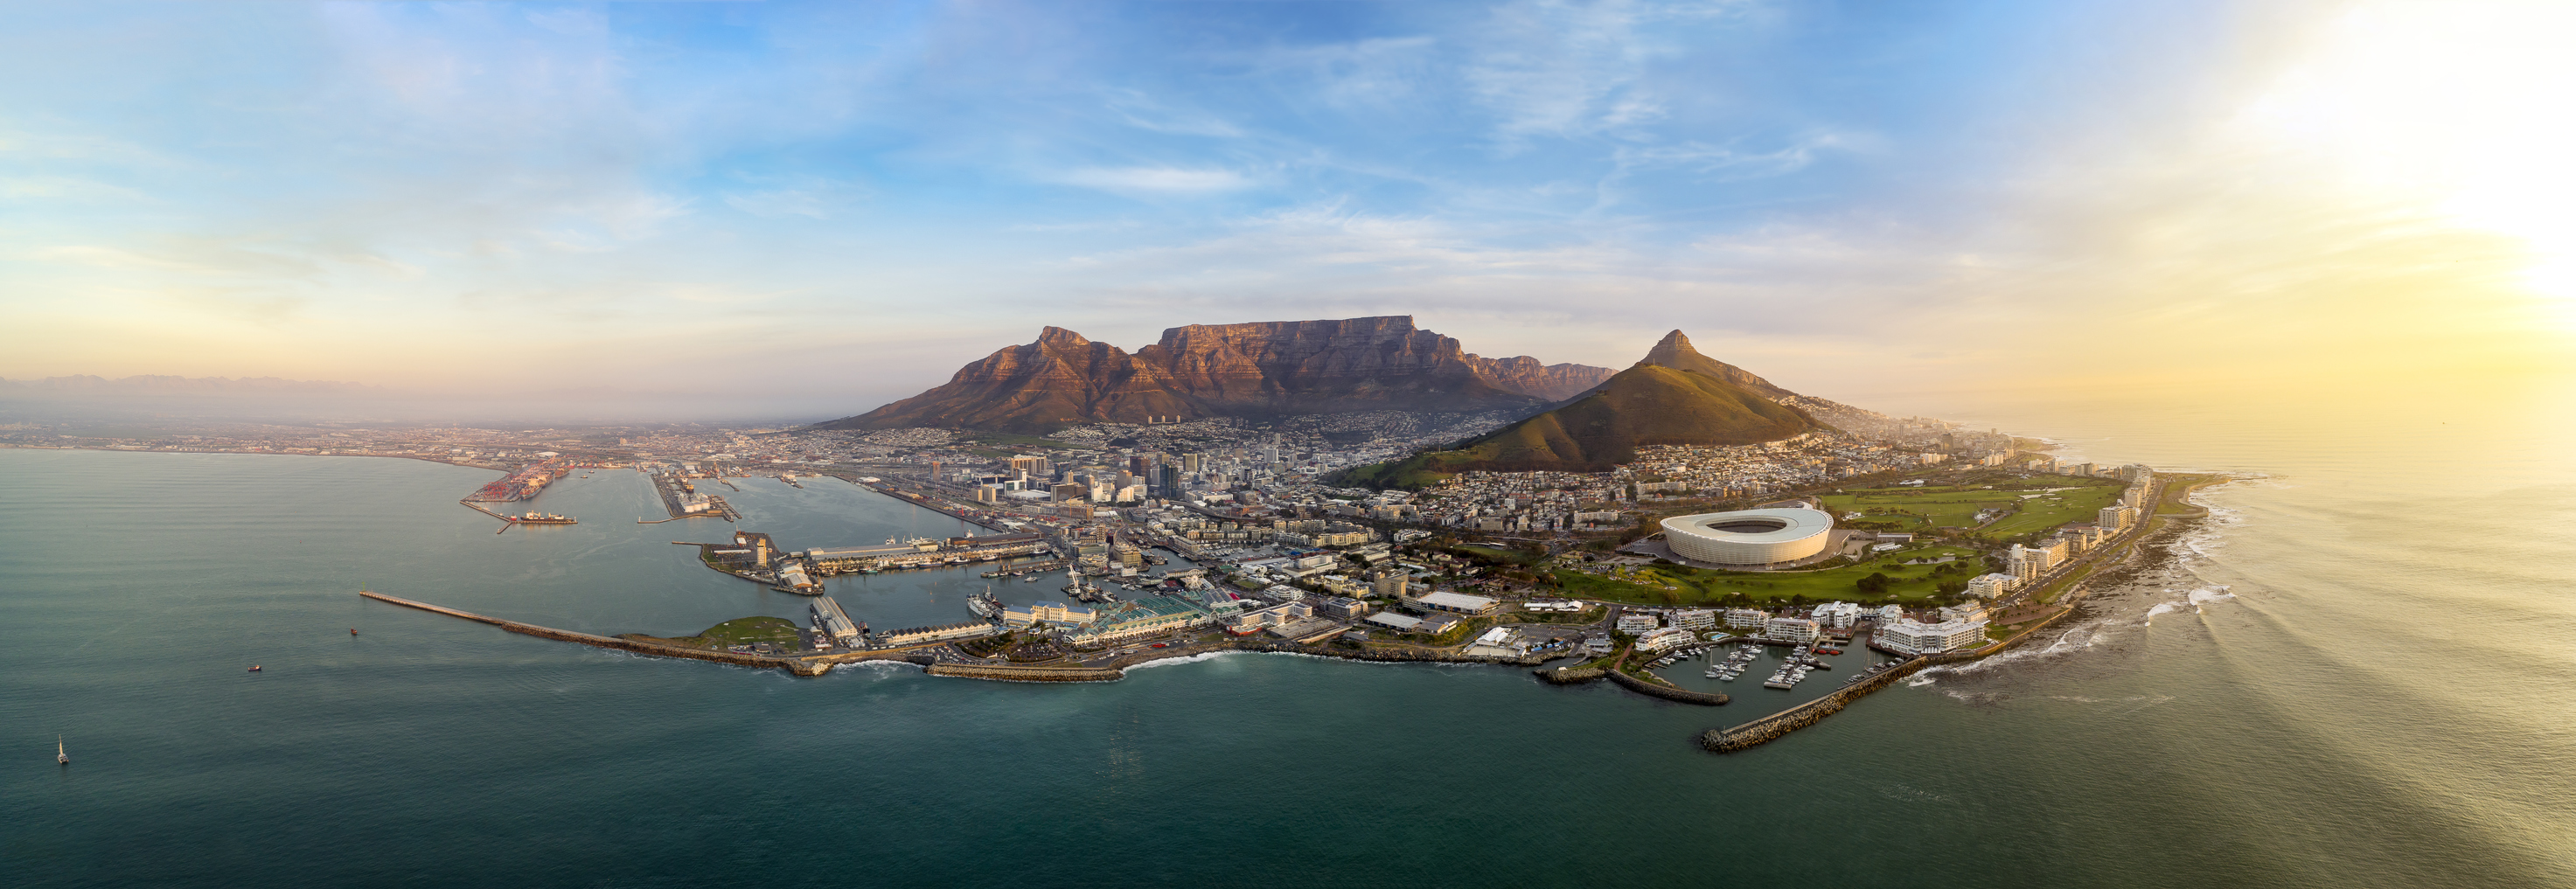 Super high resolution establishing aerial photograph of the city of Cape Town during sunset